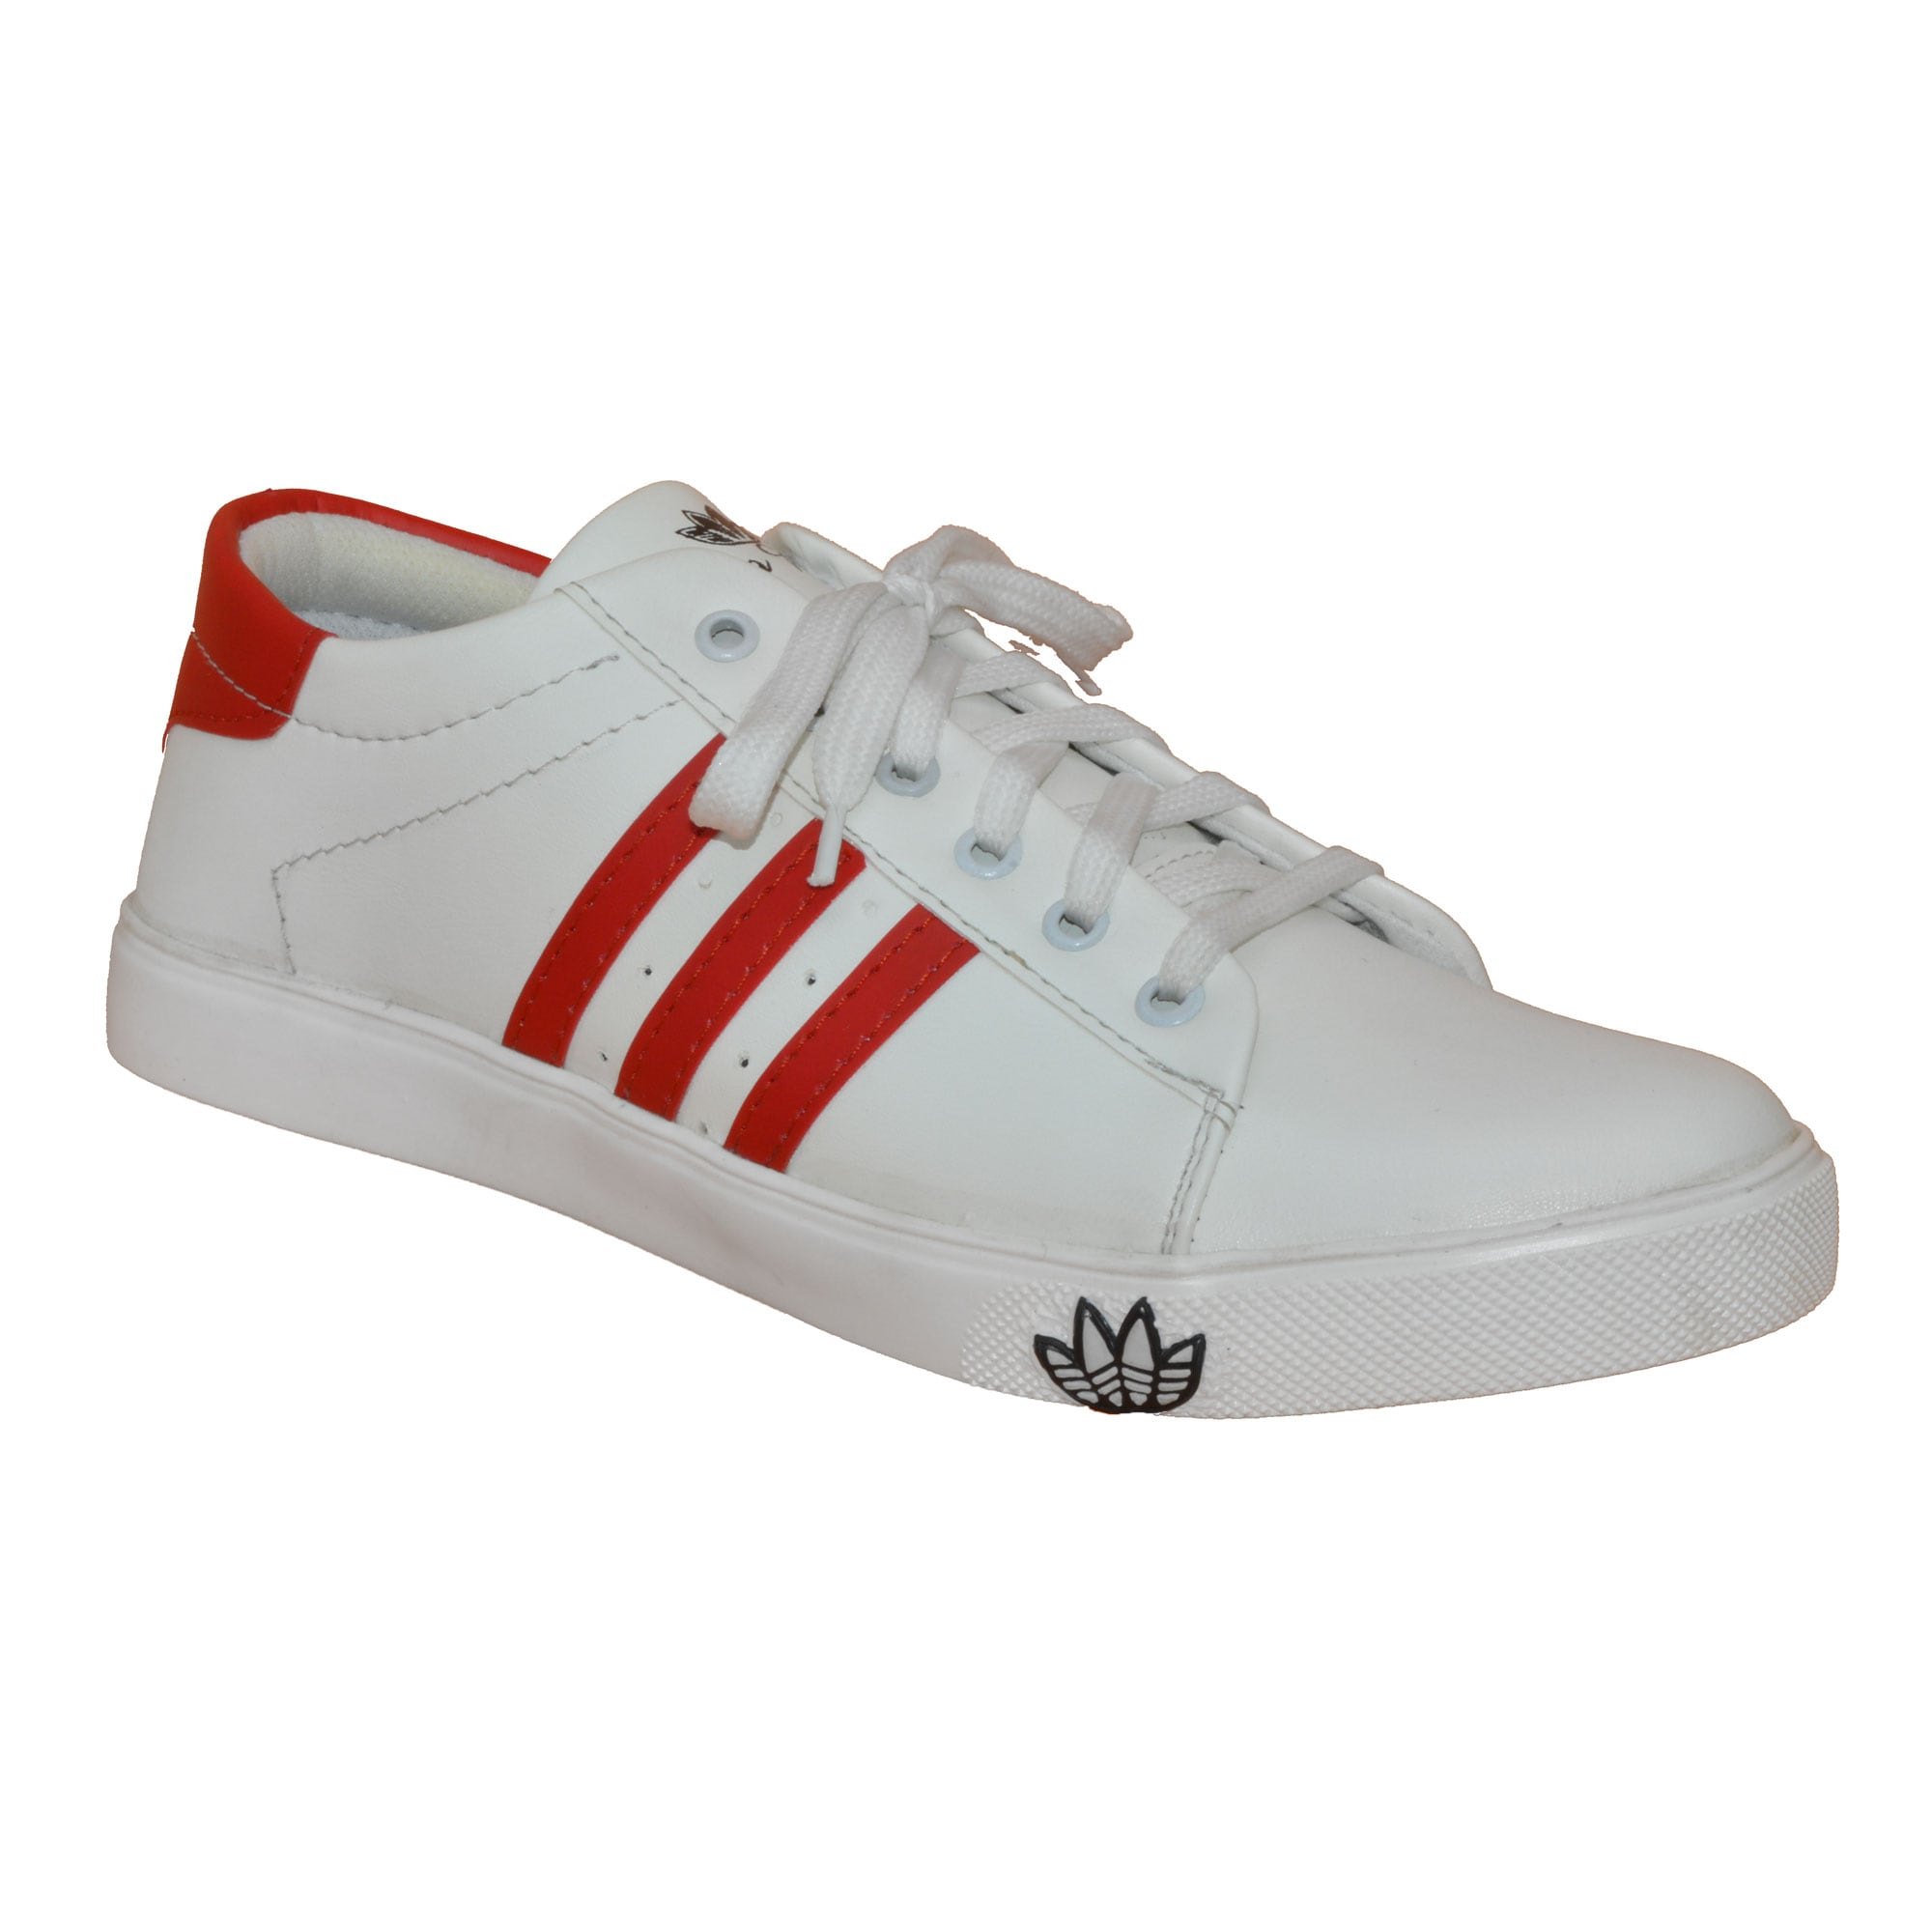 IMCOLUS114.51_RED MENS PARTYWEAR & WHITE FOAM STYLESH CANVAS SHOES IMCOLUS114.51_RED (RED,6-10,8 PAIR)